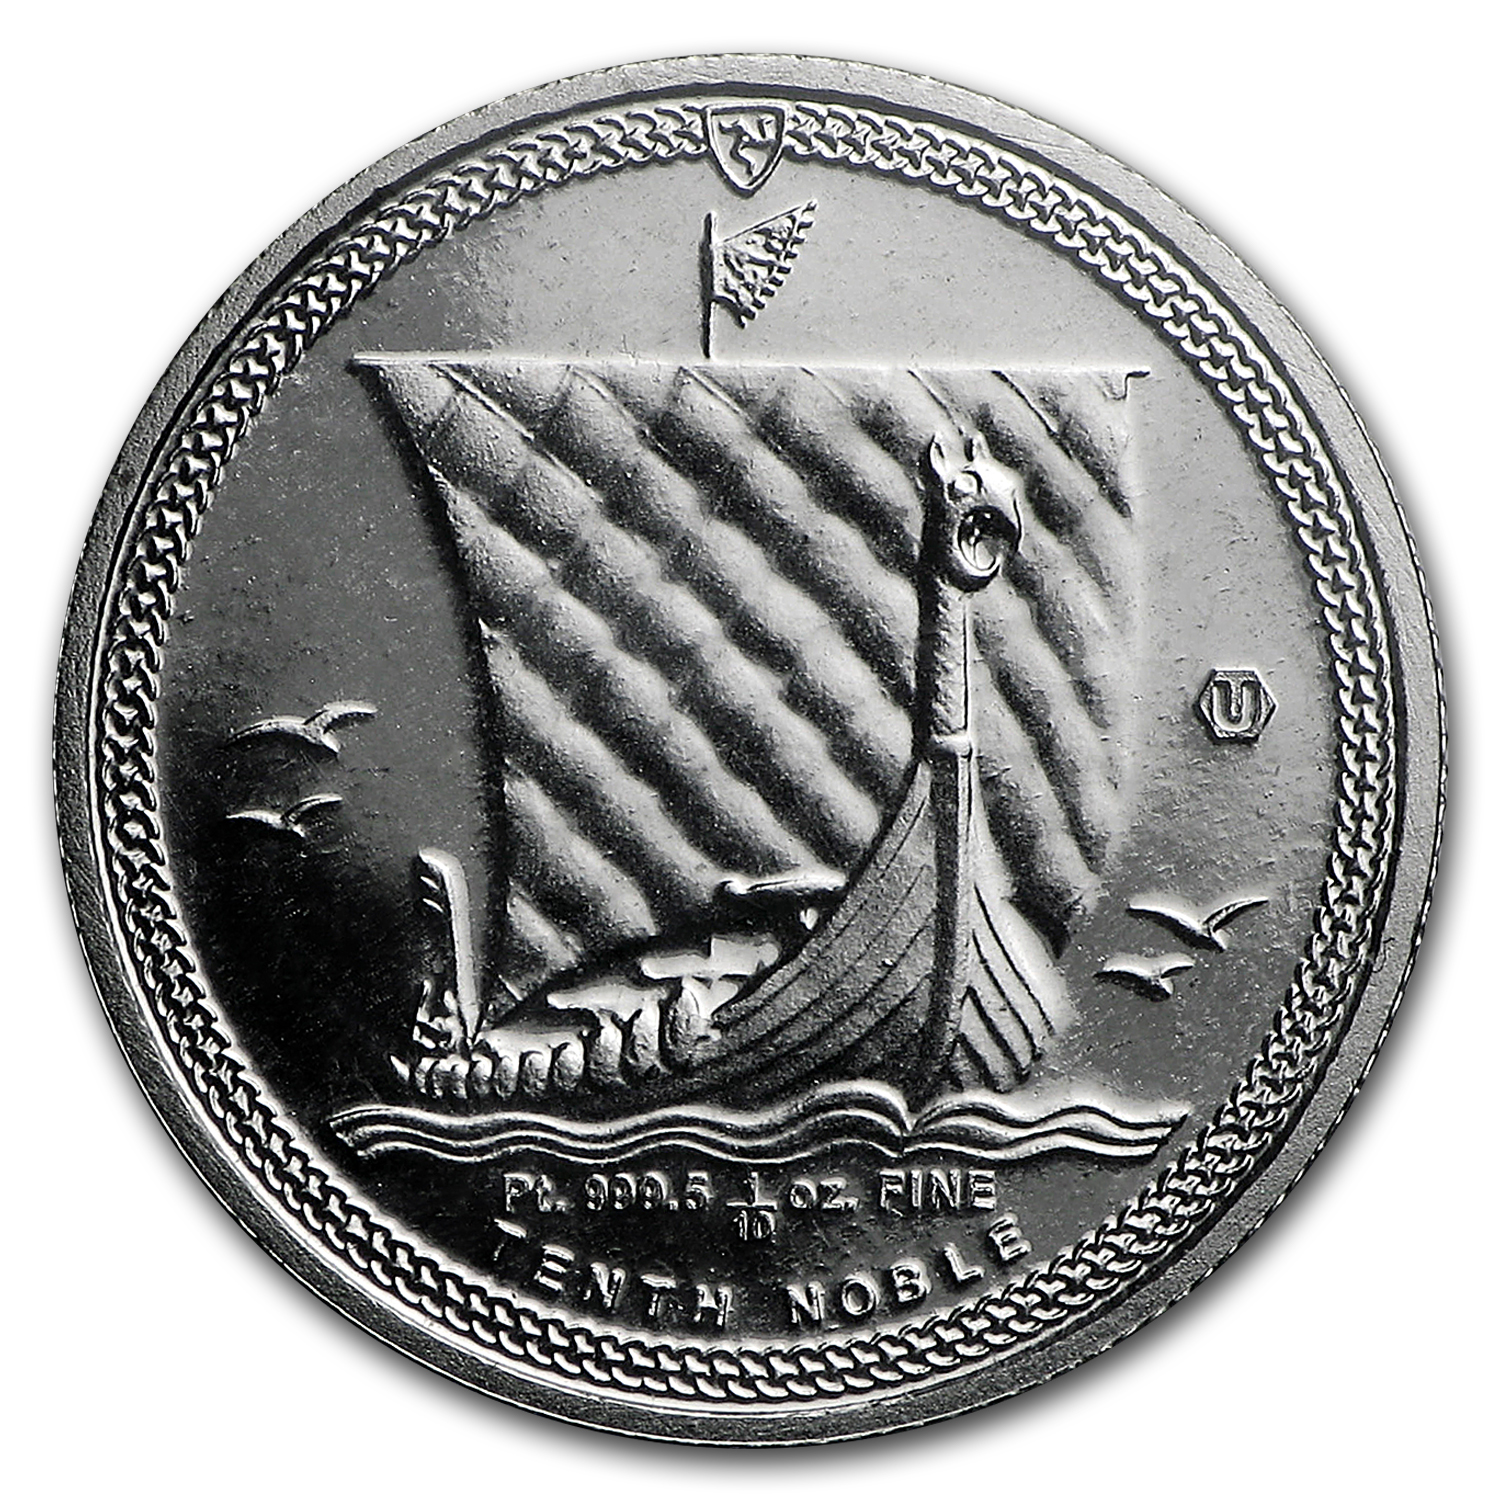 2016 Isle of Man 1/10 oz Platinum Noble BU